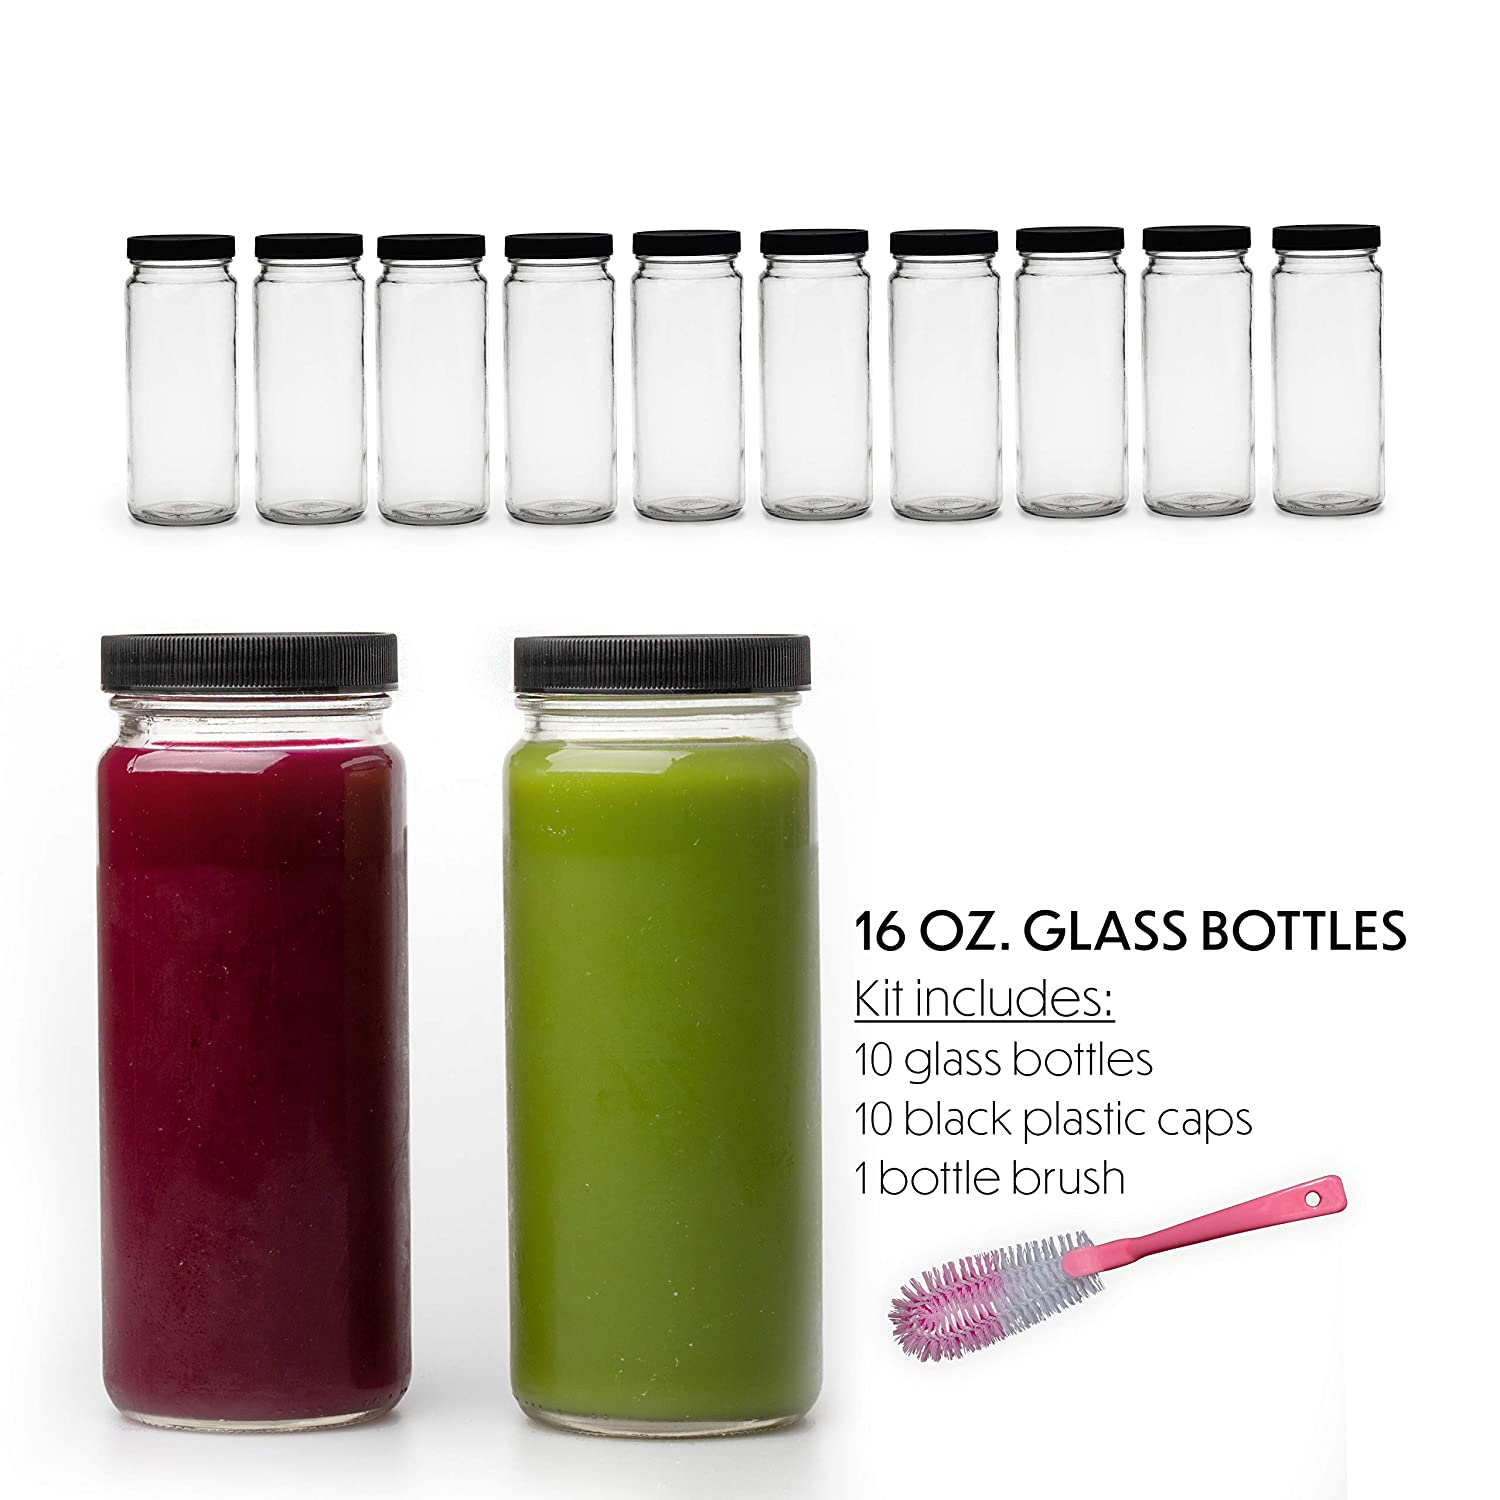 10 Juice Bottles Smoothie Cup Containers Plastic Black Lids 16 OZ Glass Bottles with Caps